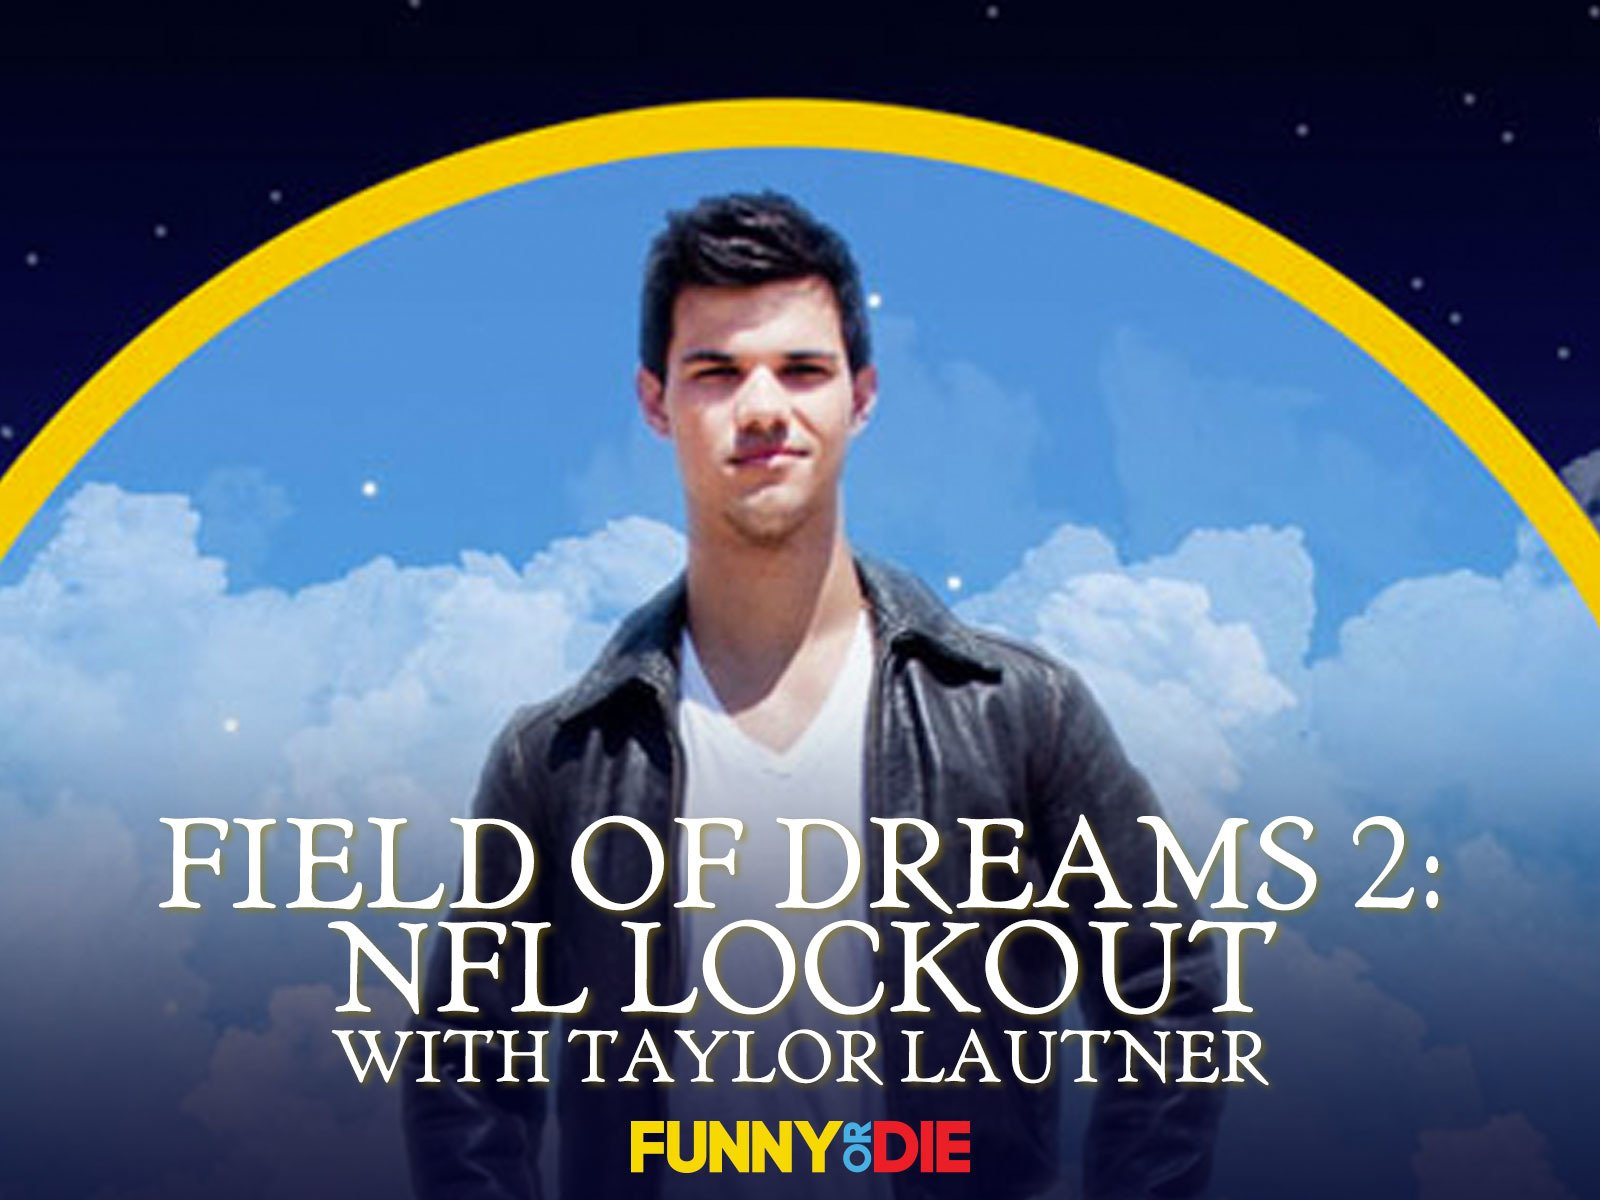 Field of Dreams 2: NFL Lockout with Taylor Lautner on Amazon Prime Instant Video UK